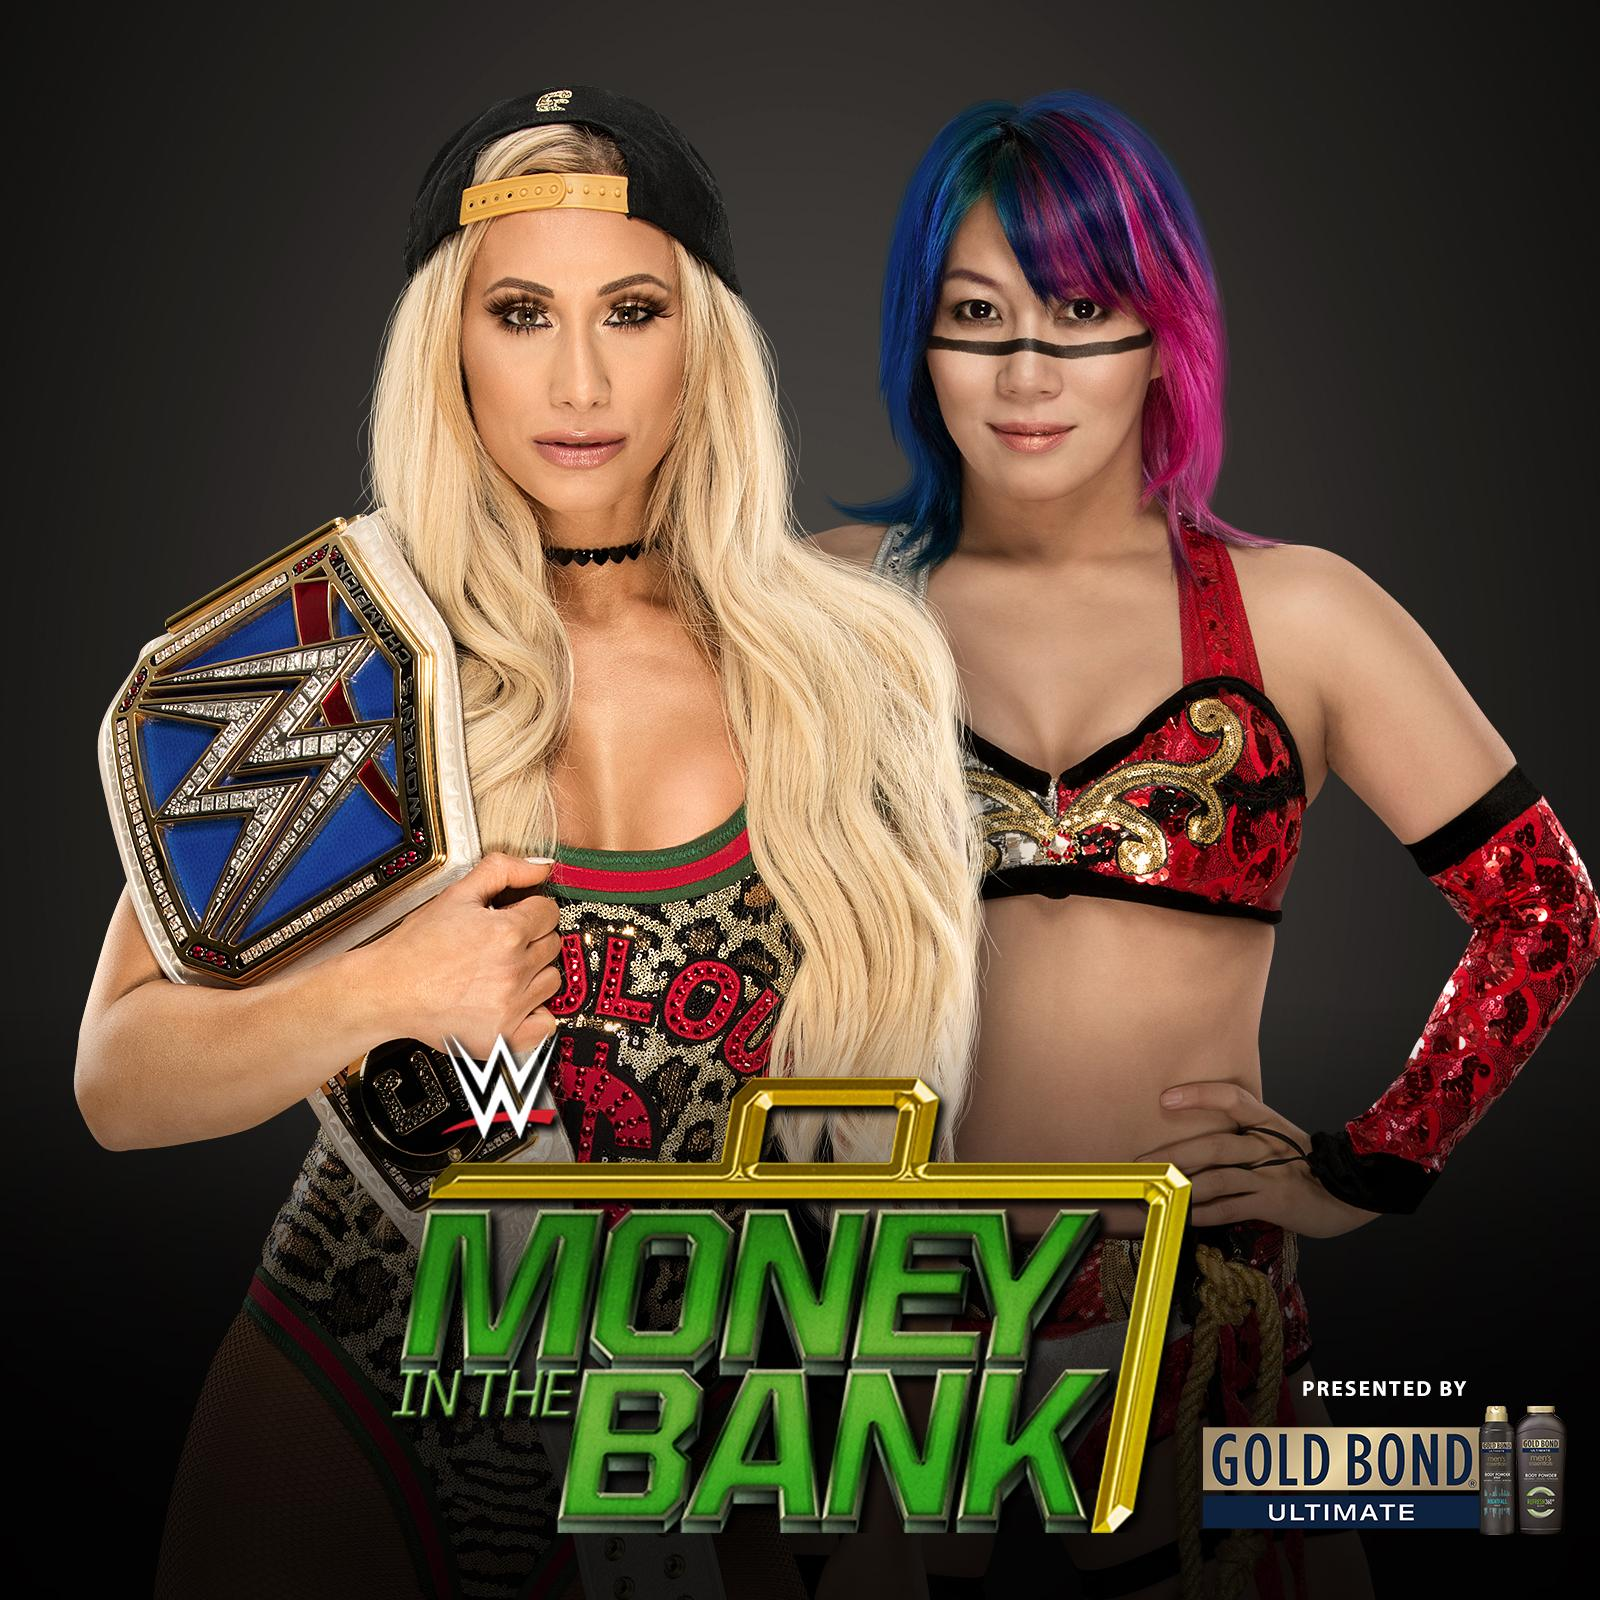 Will #SDLive #WomensChampion @CarmellaWWE be ready for @WWEAsuka at @WWE #MITB?! https://t.co/fgQyAC1Kf5 https://t.co/6IzuI0XSa0